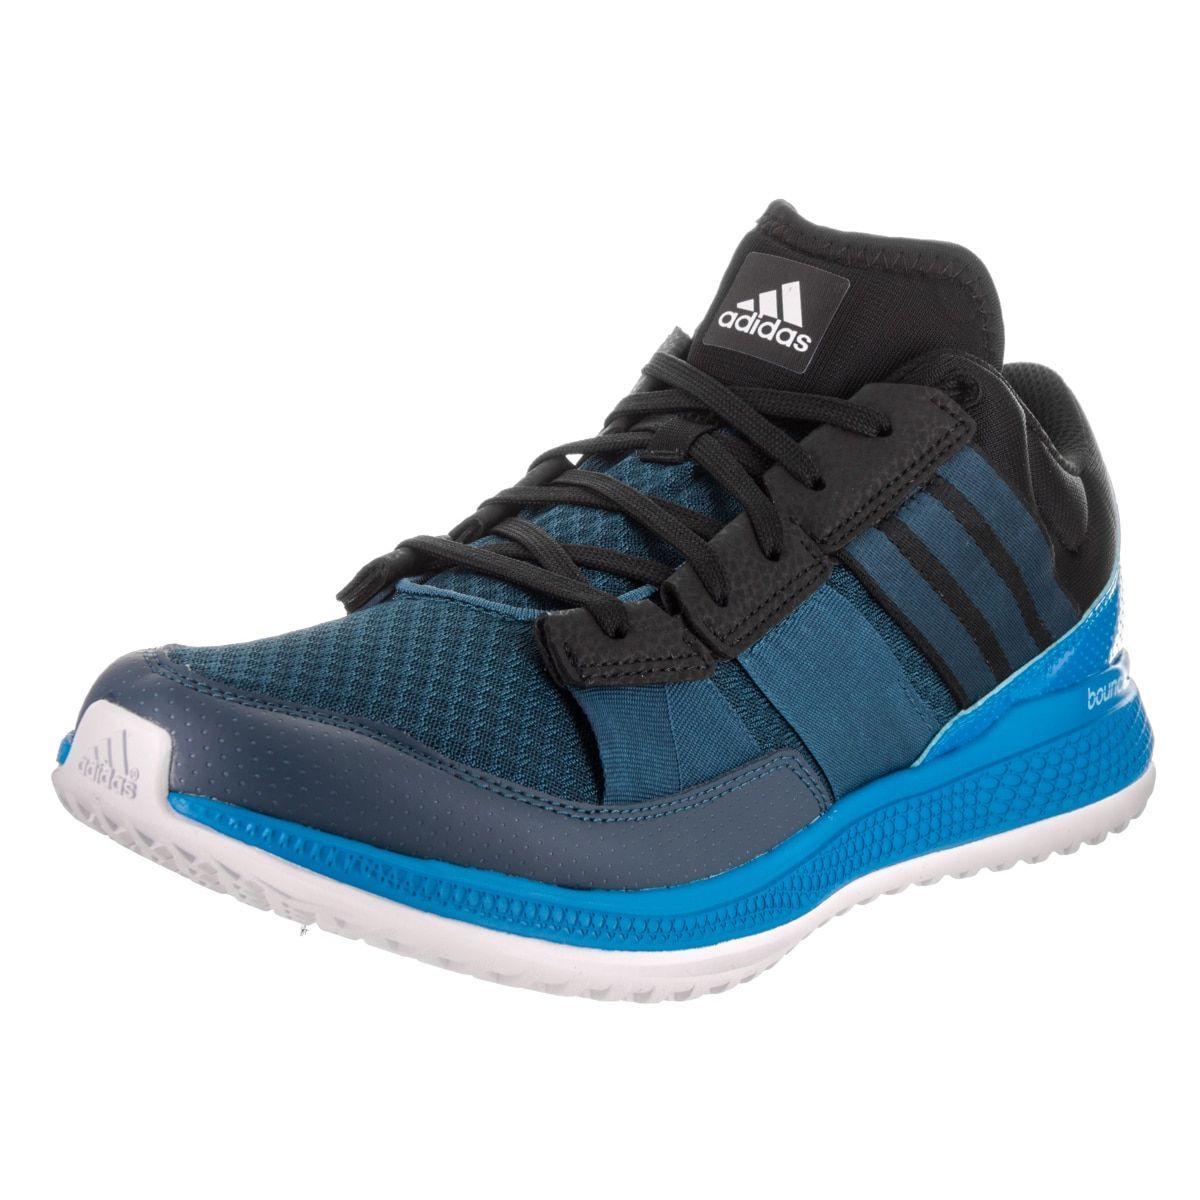 be333ab5f Adidas Men s ZG Bounce Trainer Blue Synthetic Leather Training Shoes ...